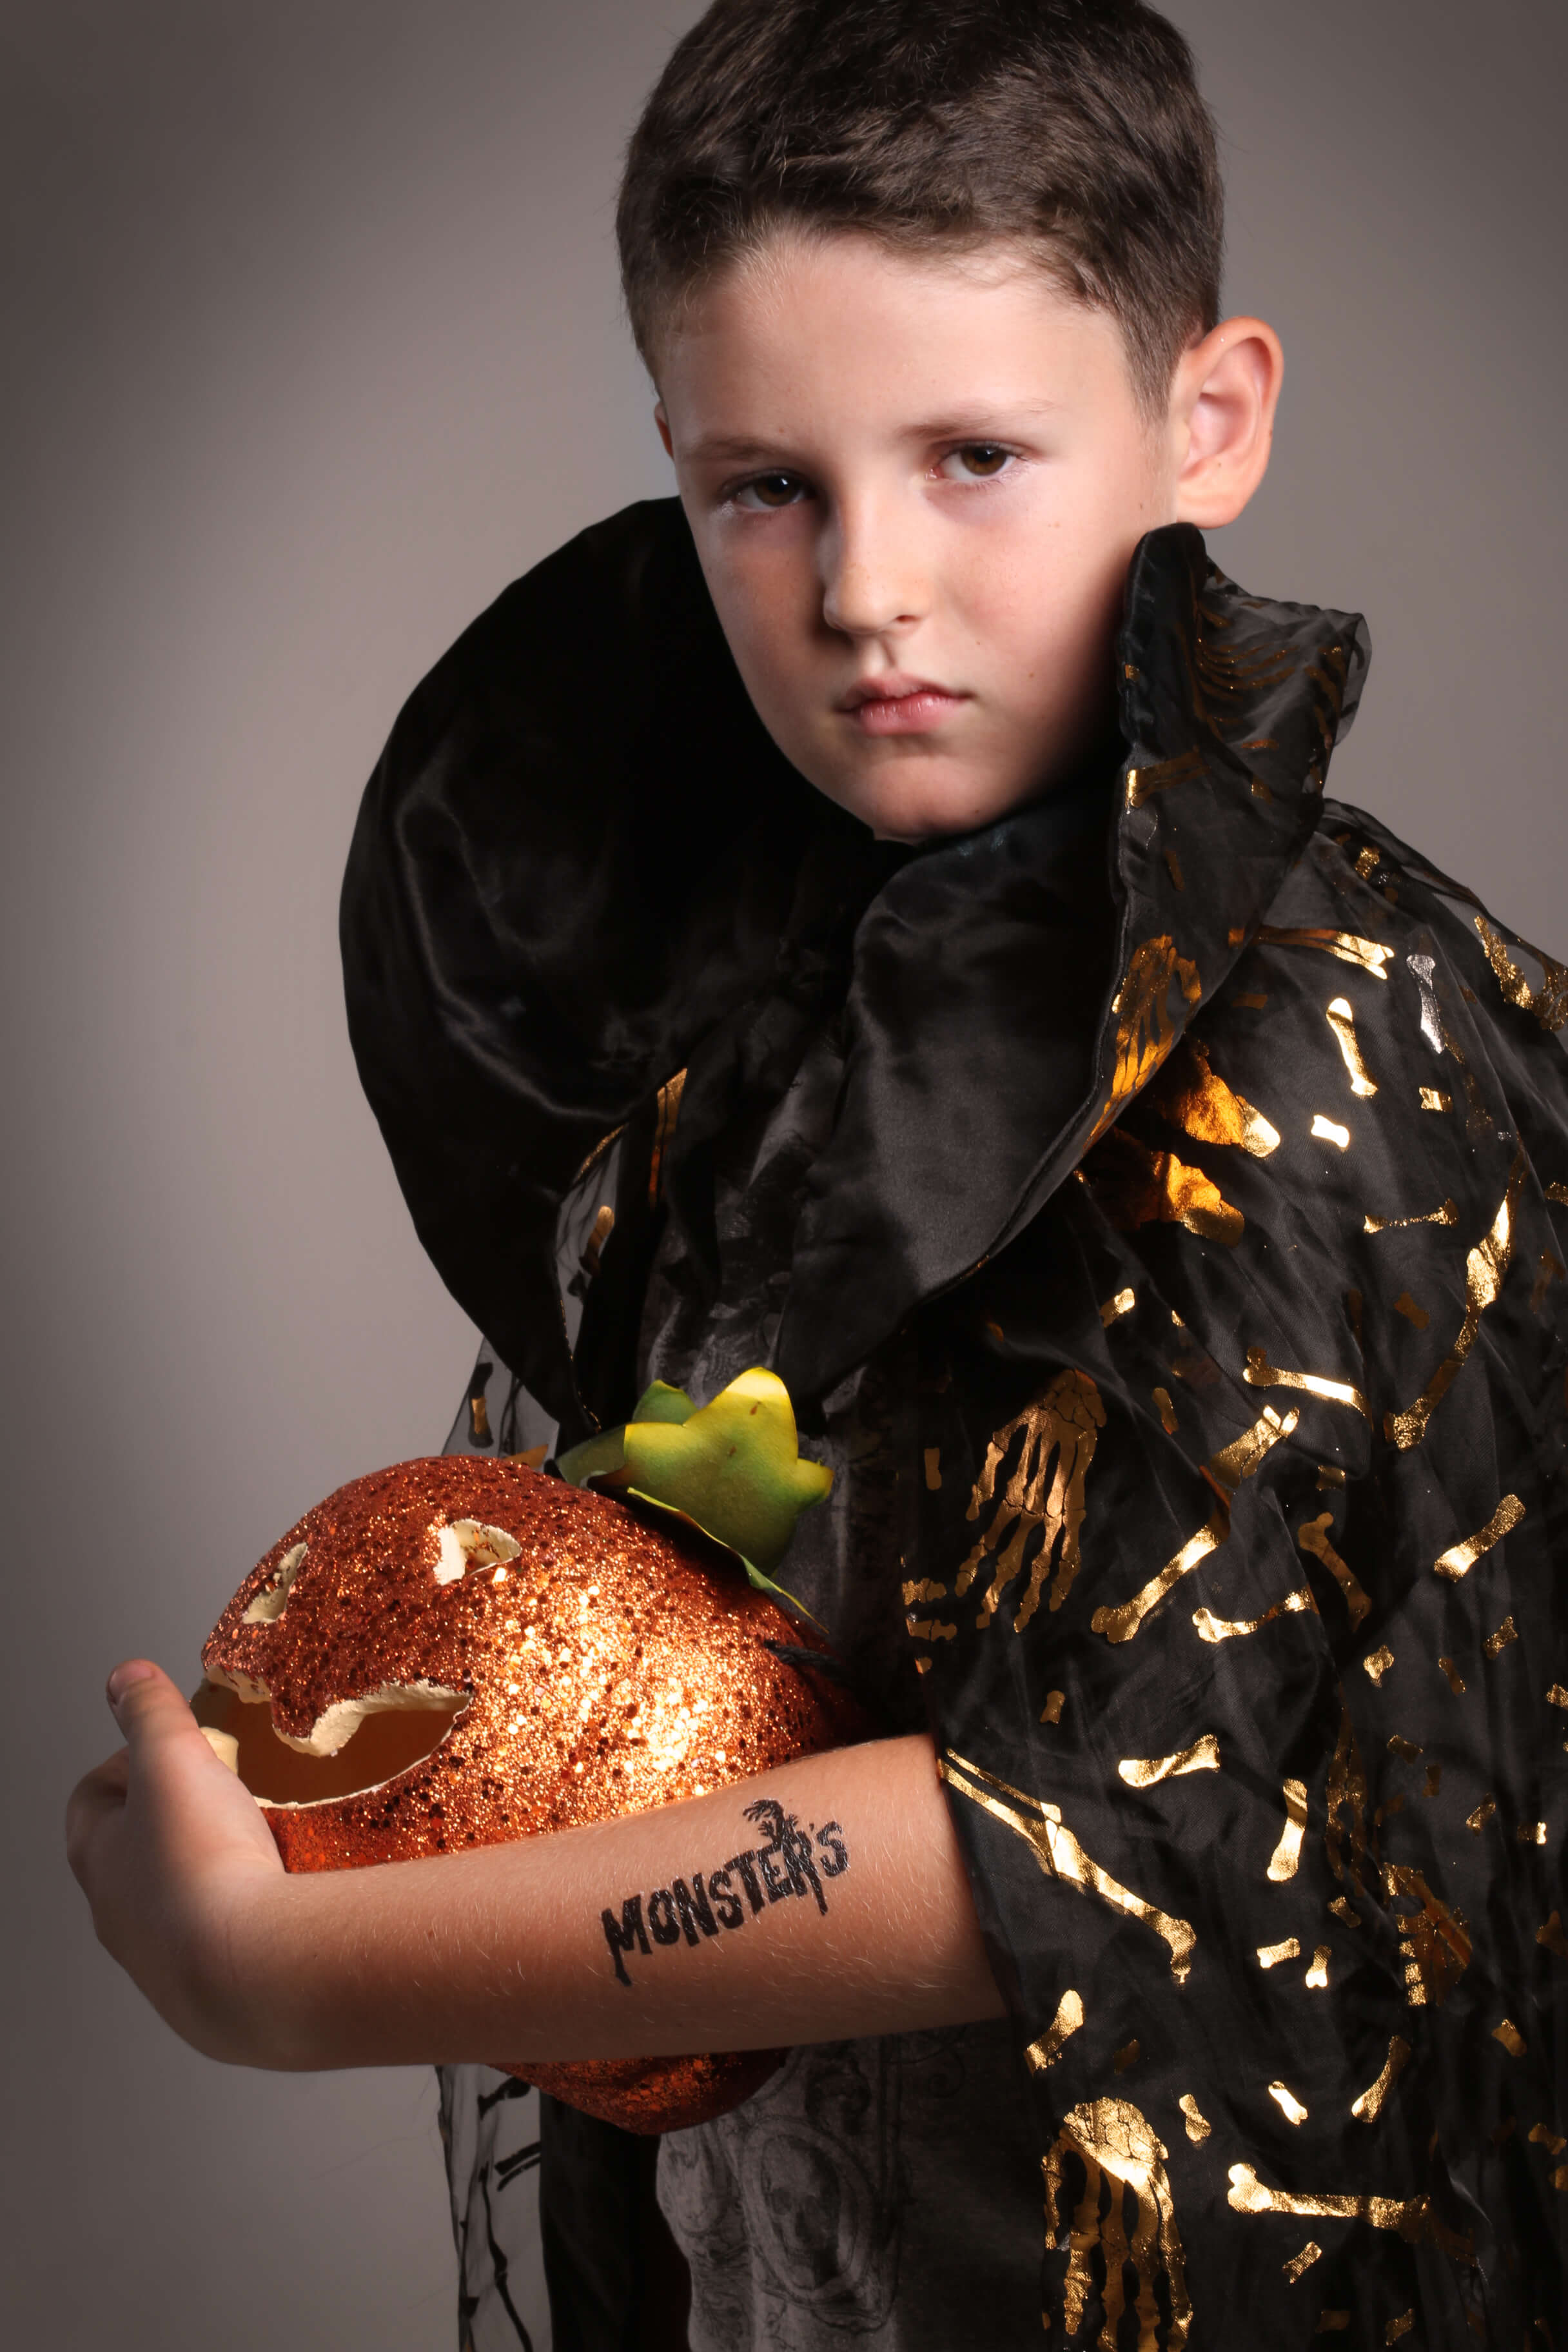 boy in halloween gape holding a scary carved pumpkin and wearing spooky tattoo